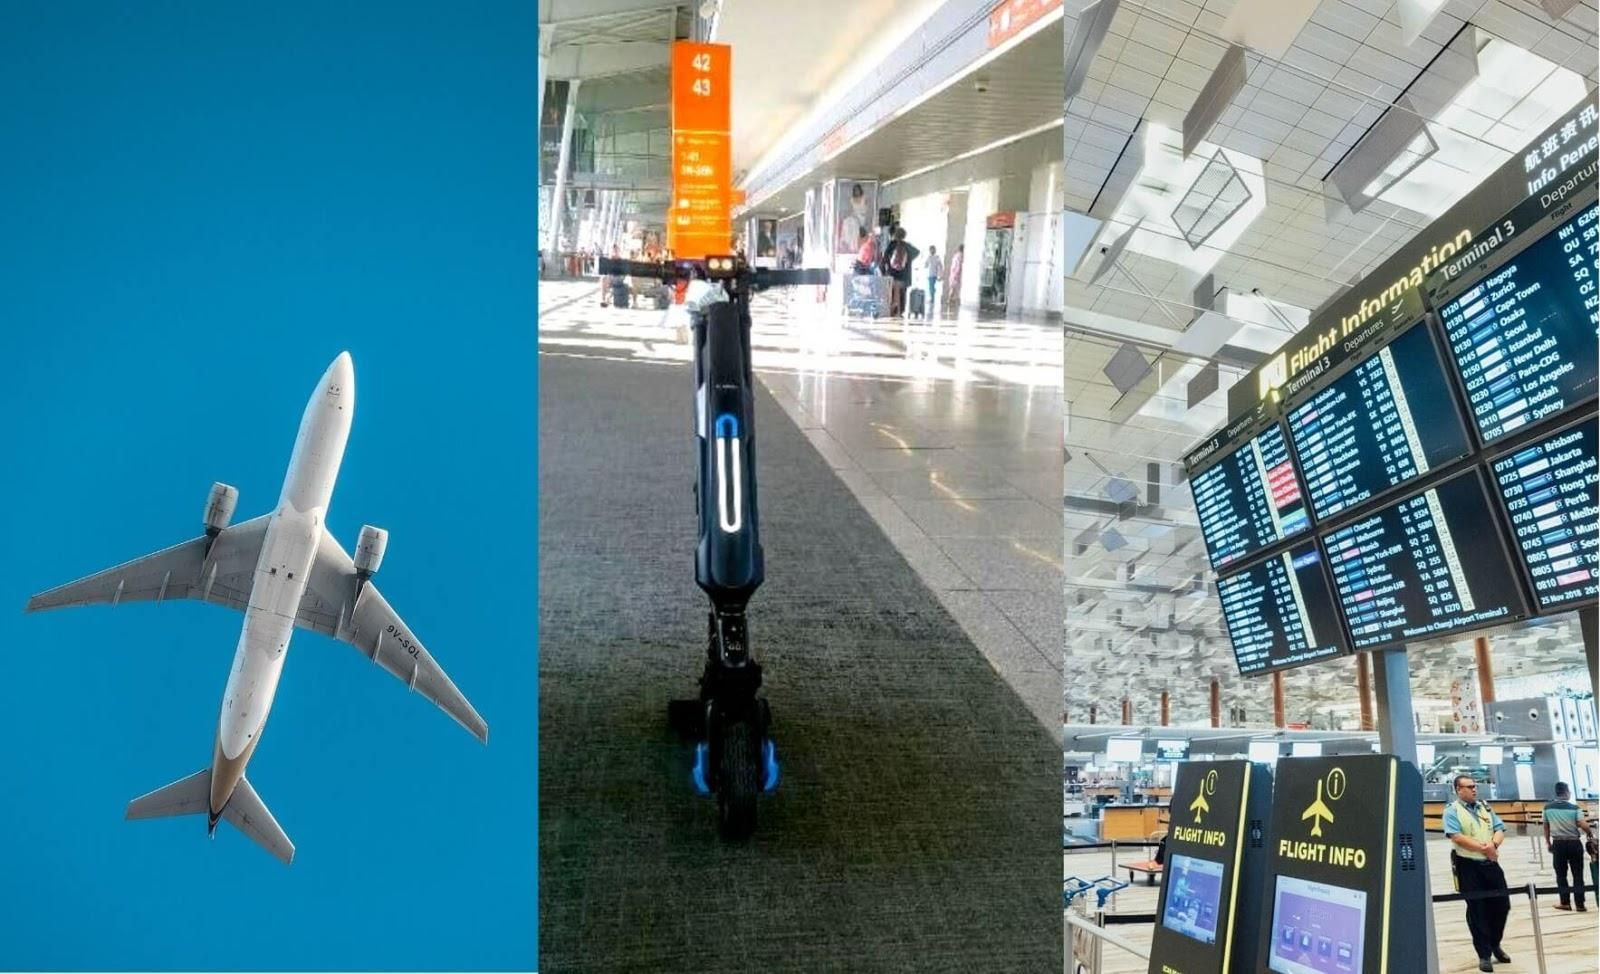 Three pictures: One featuring an airplane in the sky, the other one featuring an electric handicycle and the last one featuring an airport with a flight information digital board.